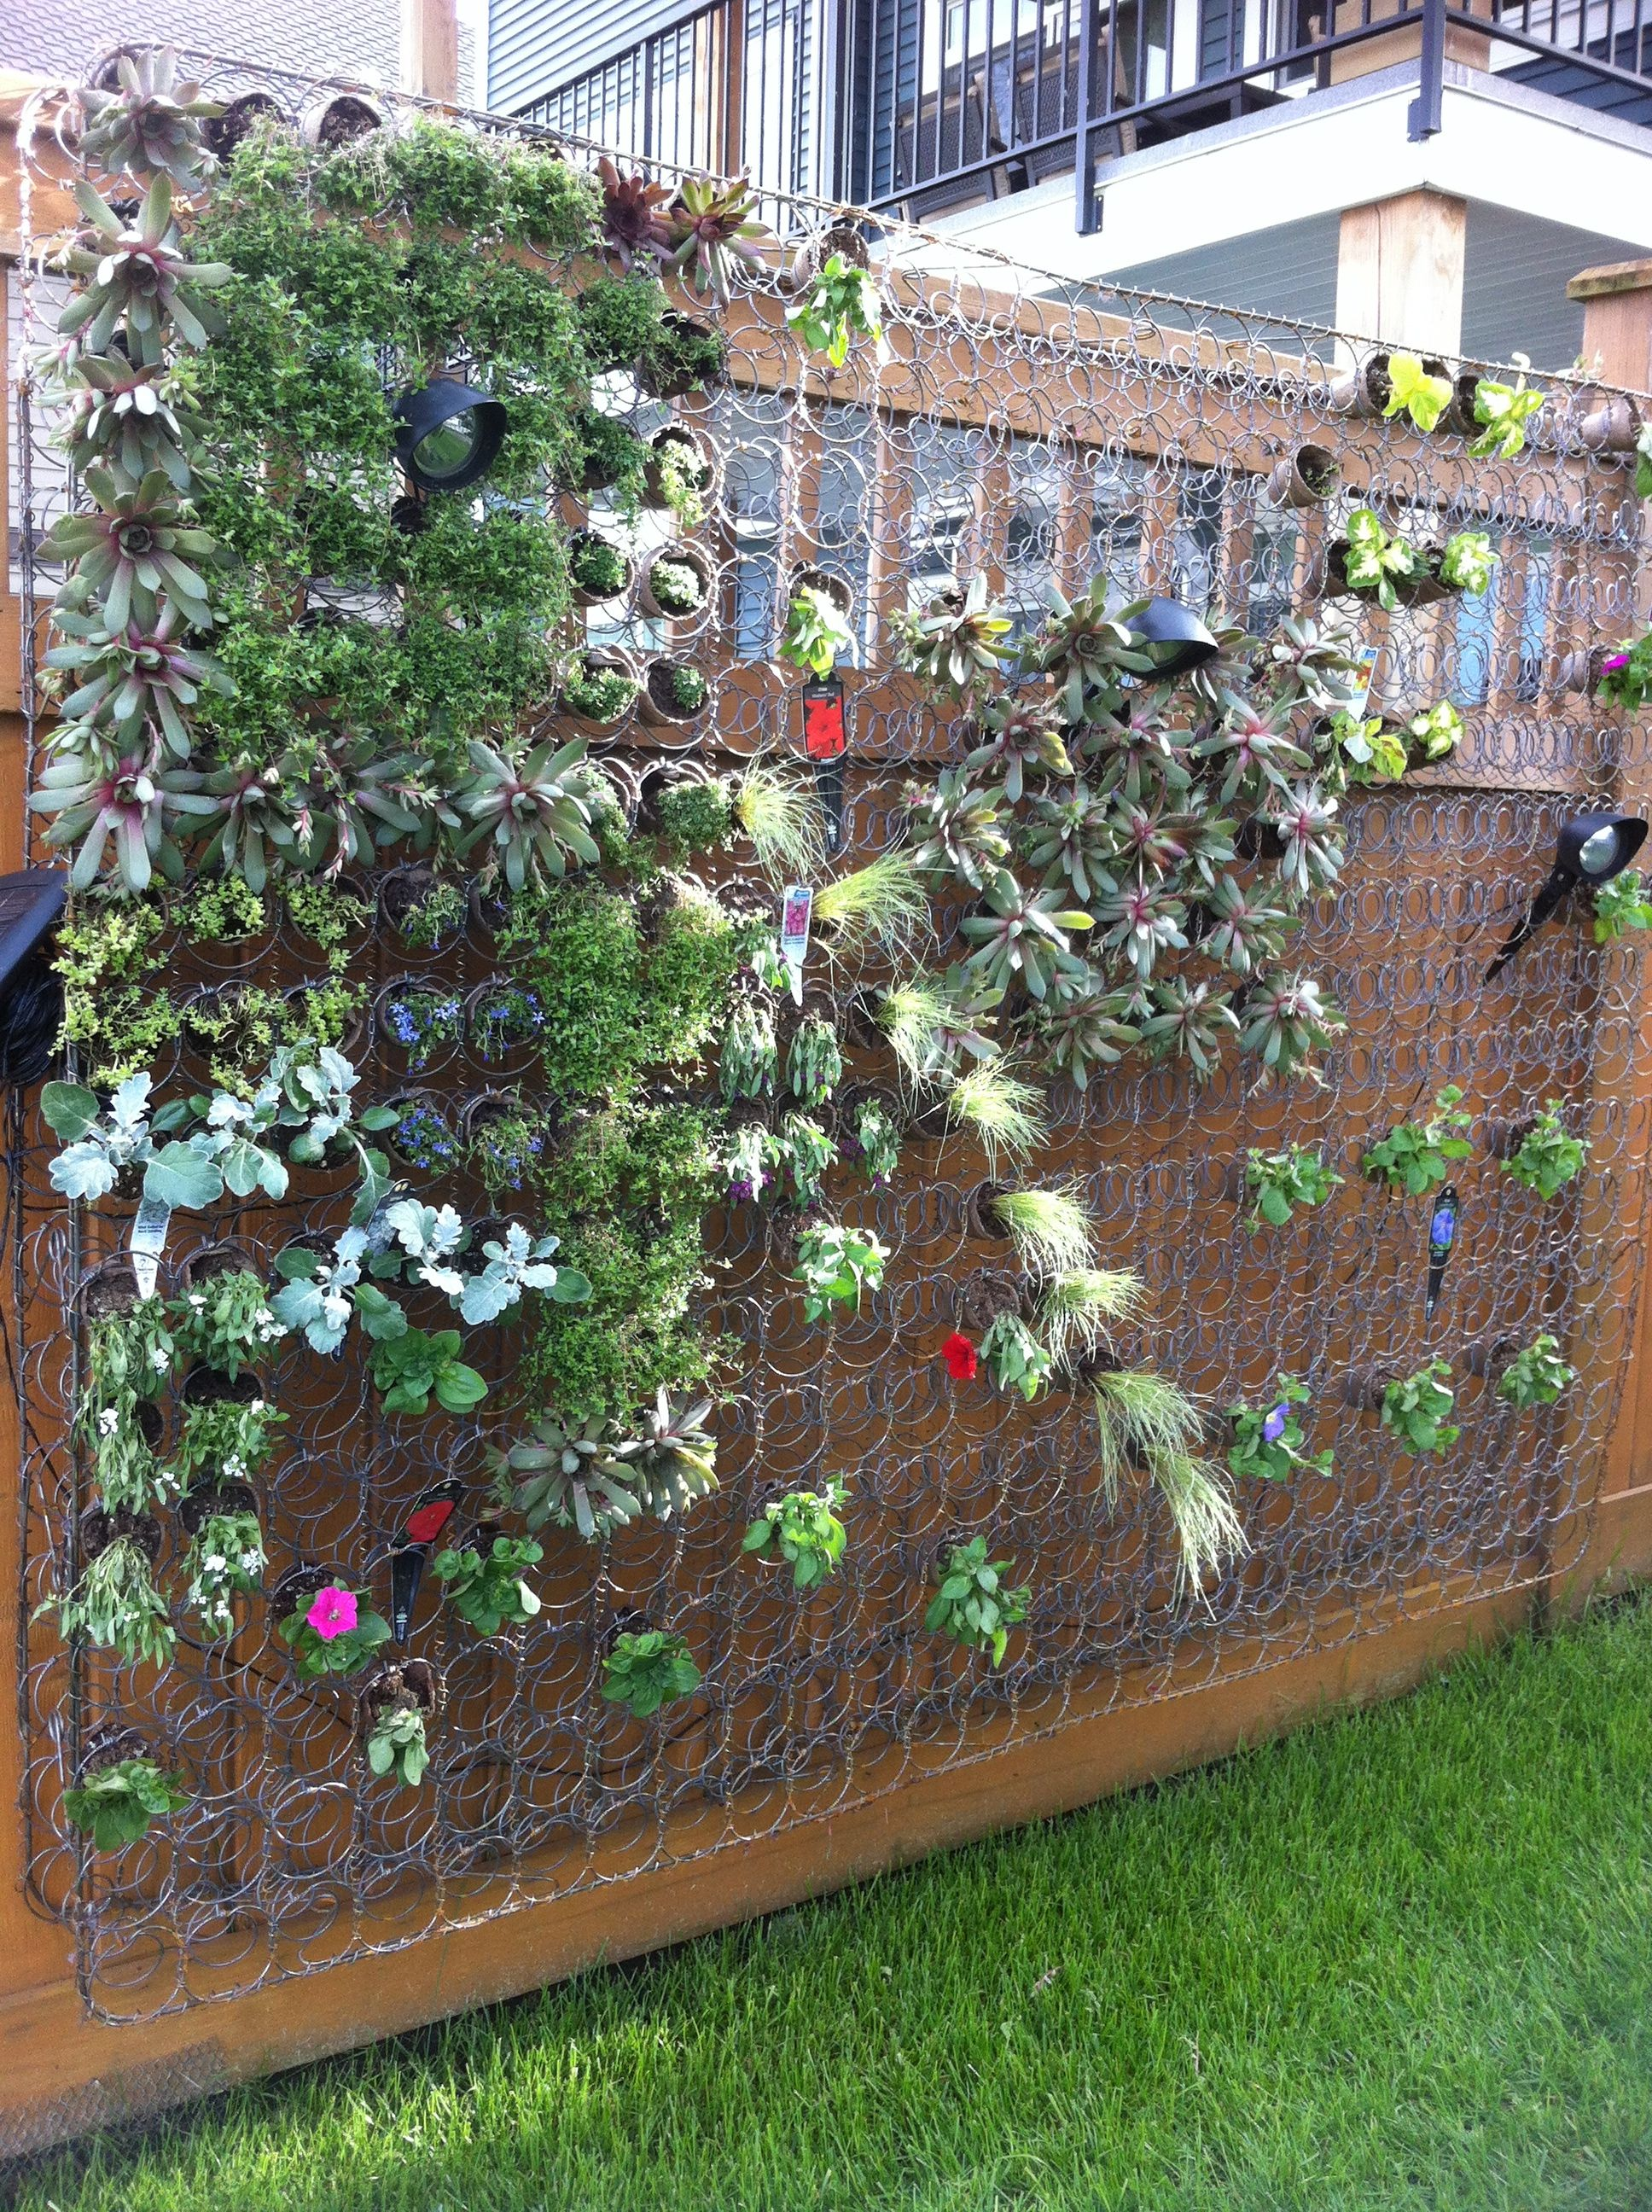 Living Wall With Repurposed Box Spring Spring Garden Vertical